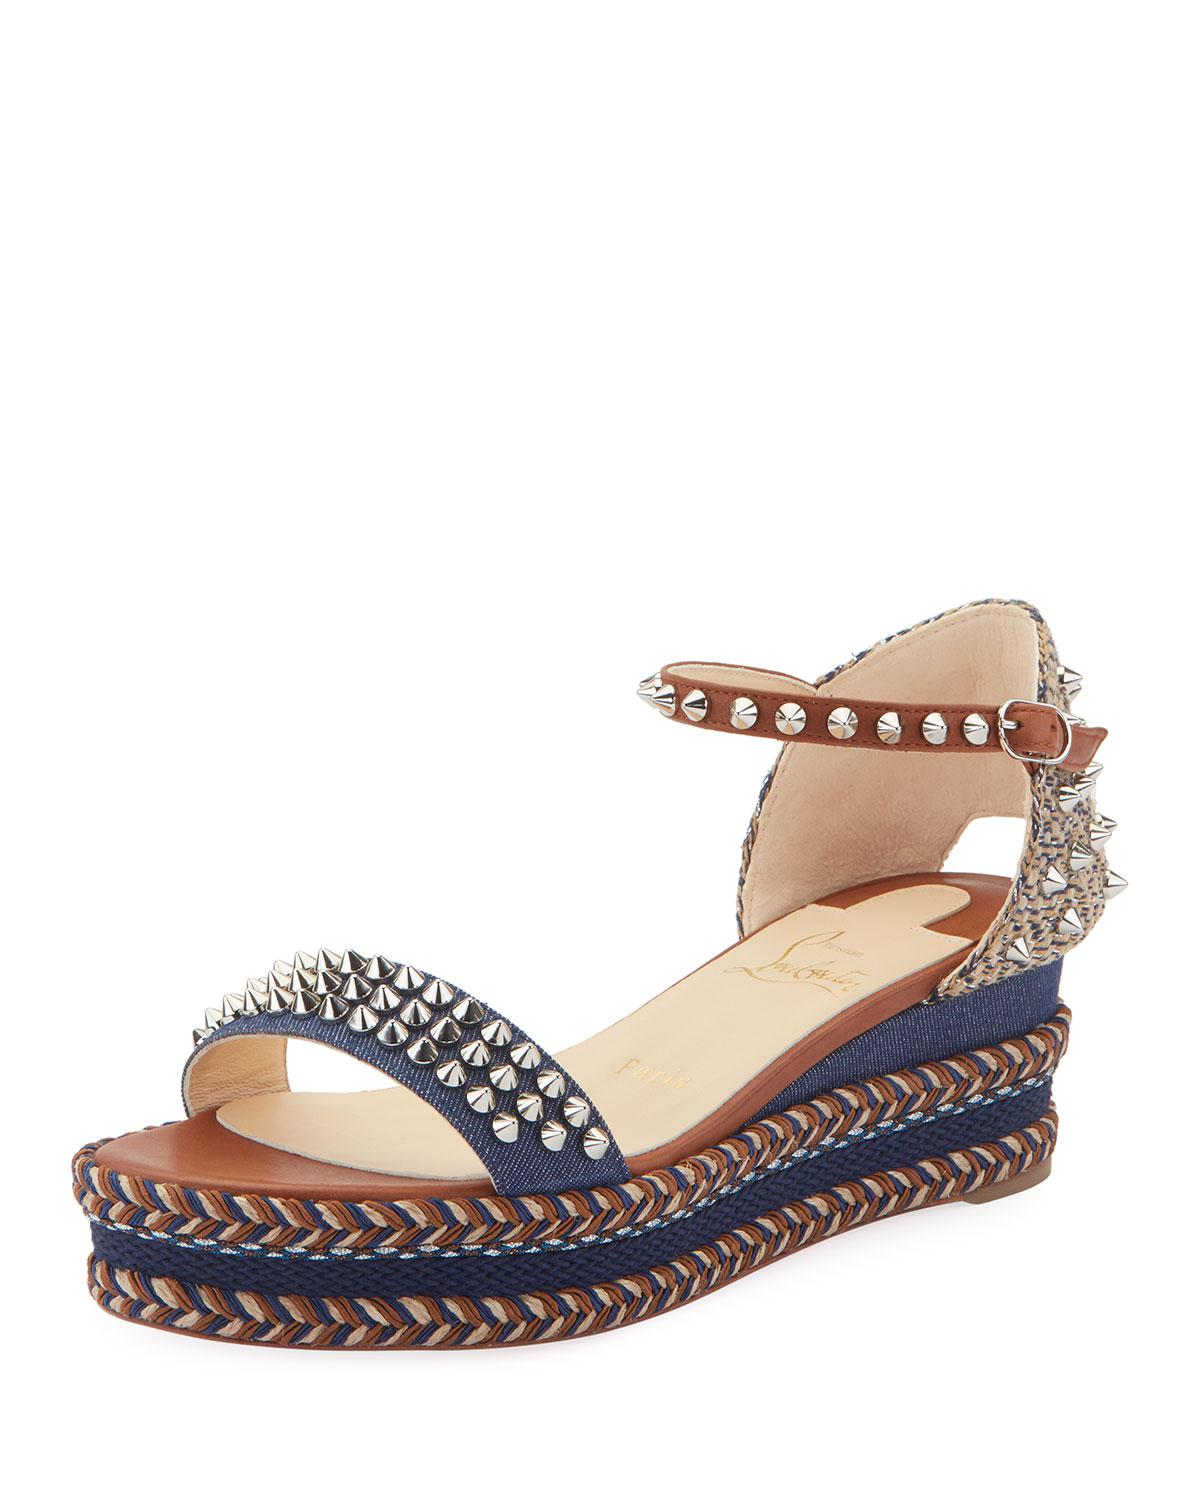 sports shoes d1a6d dc8f9 Christian Louboutin Blue Madmonica 60mm Spiked Denim Wedge Red Sole Sandals